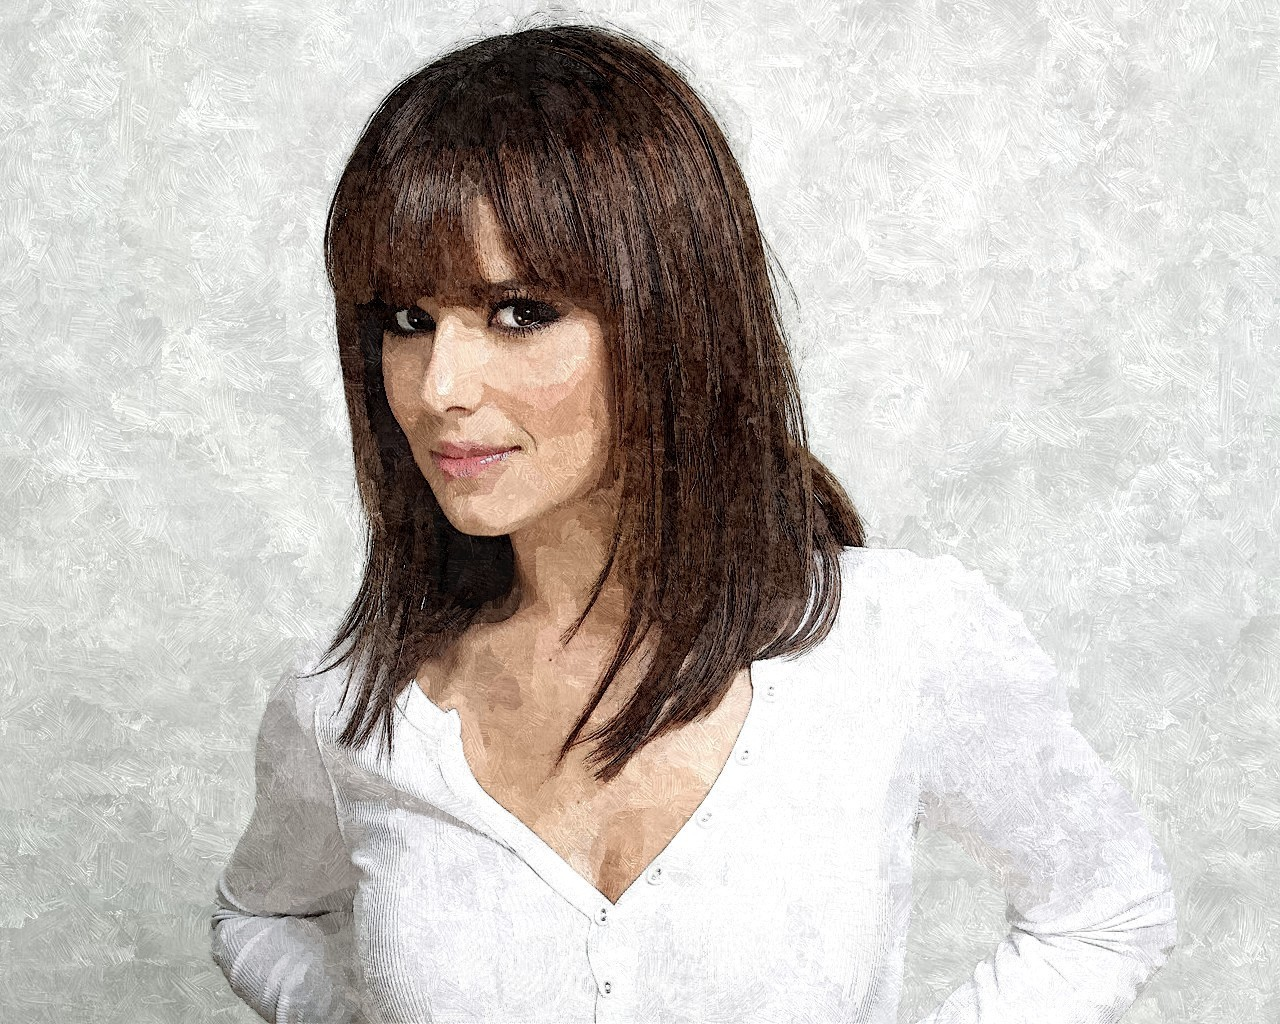 Cheryl - Cheryl Cole Fan Art (13003918) - Fanpop Cheryl Cole Photos